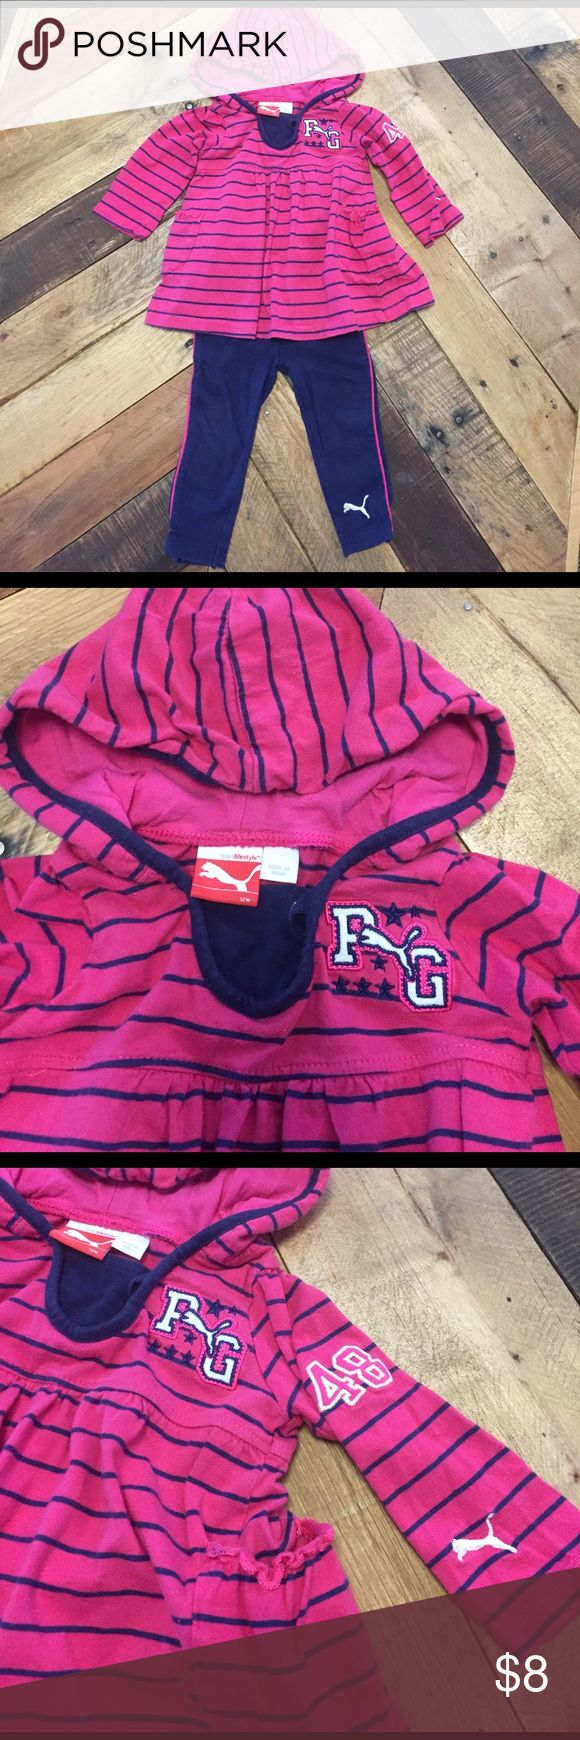 Puma Sport Lifestyle matching set (12 mo) Puma Sport Lifestyle matching baby girl set. pink and Navy. Top is hooded with pockets on the front and Puma logos. Pants have elastic waist and stripe down the side. Adorable outfit, great condition. Puma Matching Sets